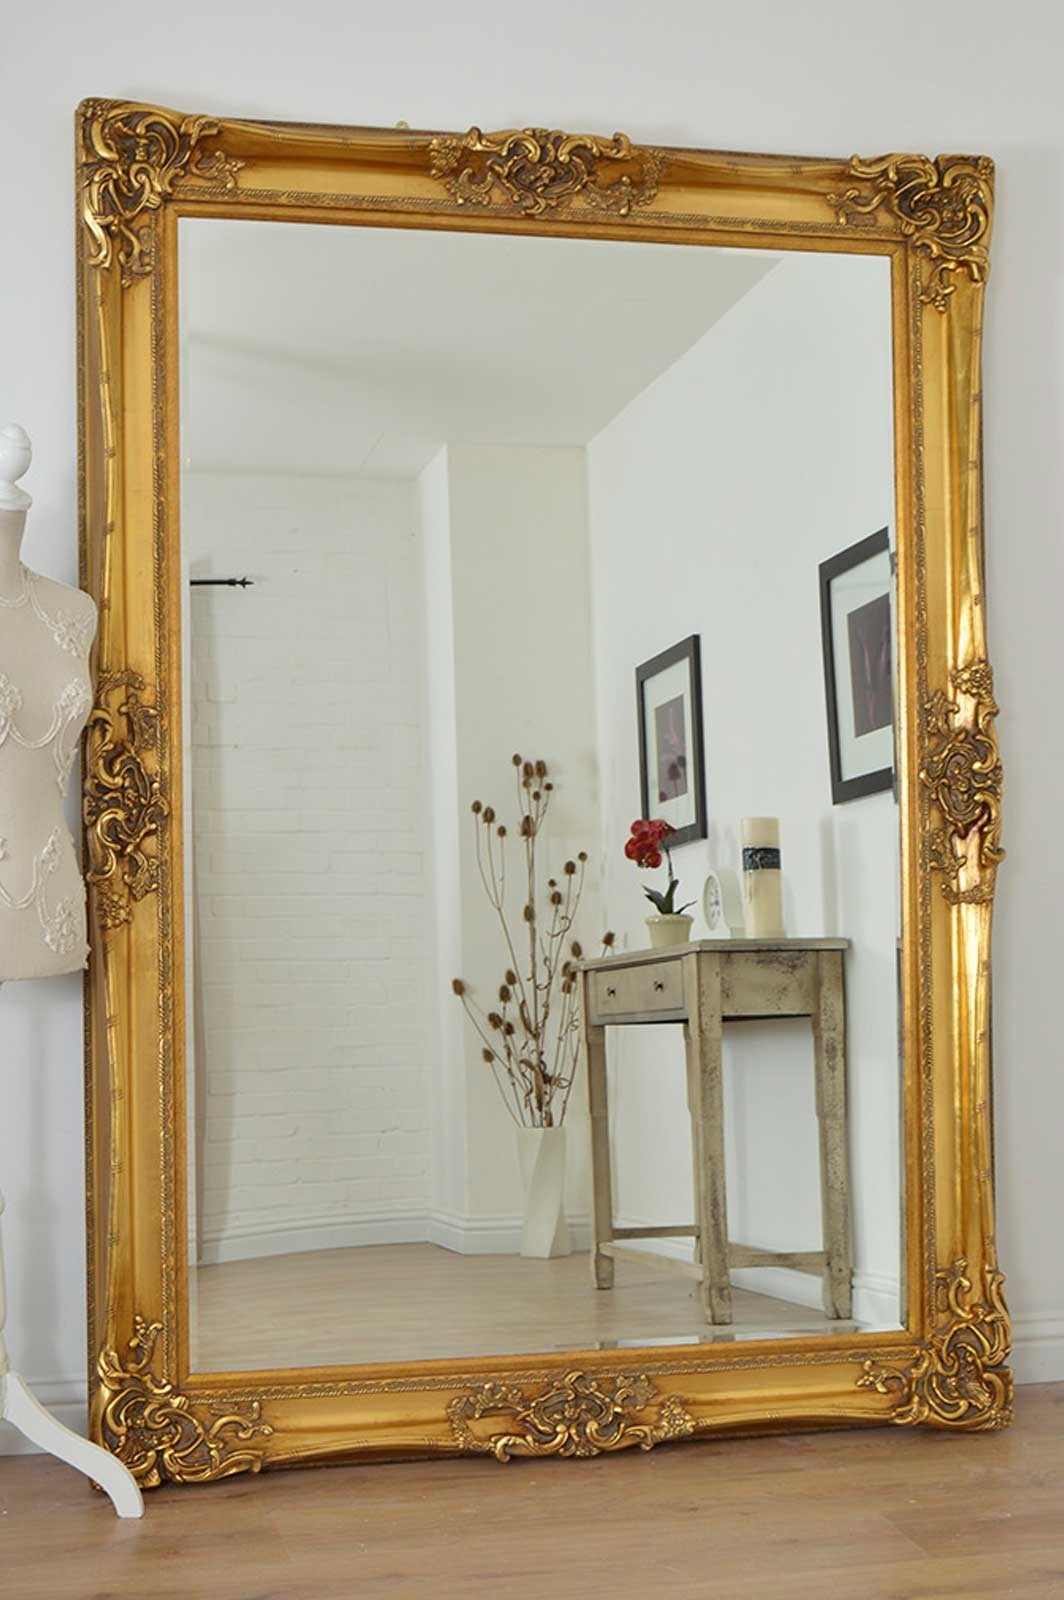 Large Gold Very Ornate Antique Design Wall Mirror 7ft X 5ft 213cm Within Ornate Gold Mirror (Photo 1 of 15)